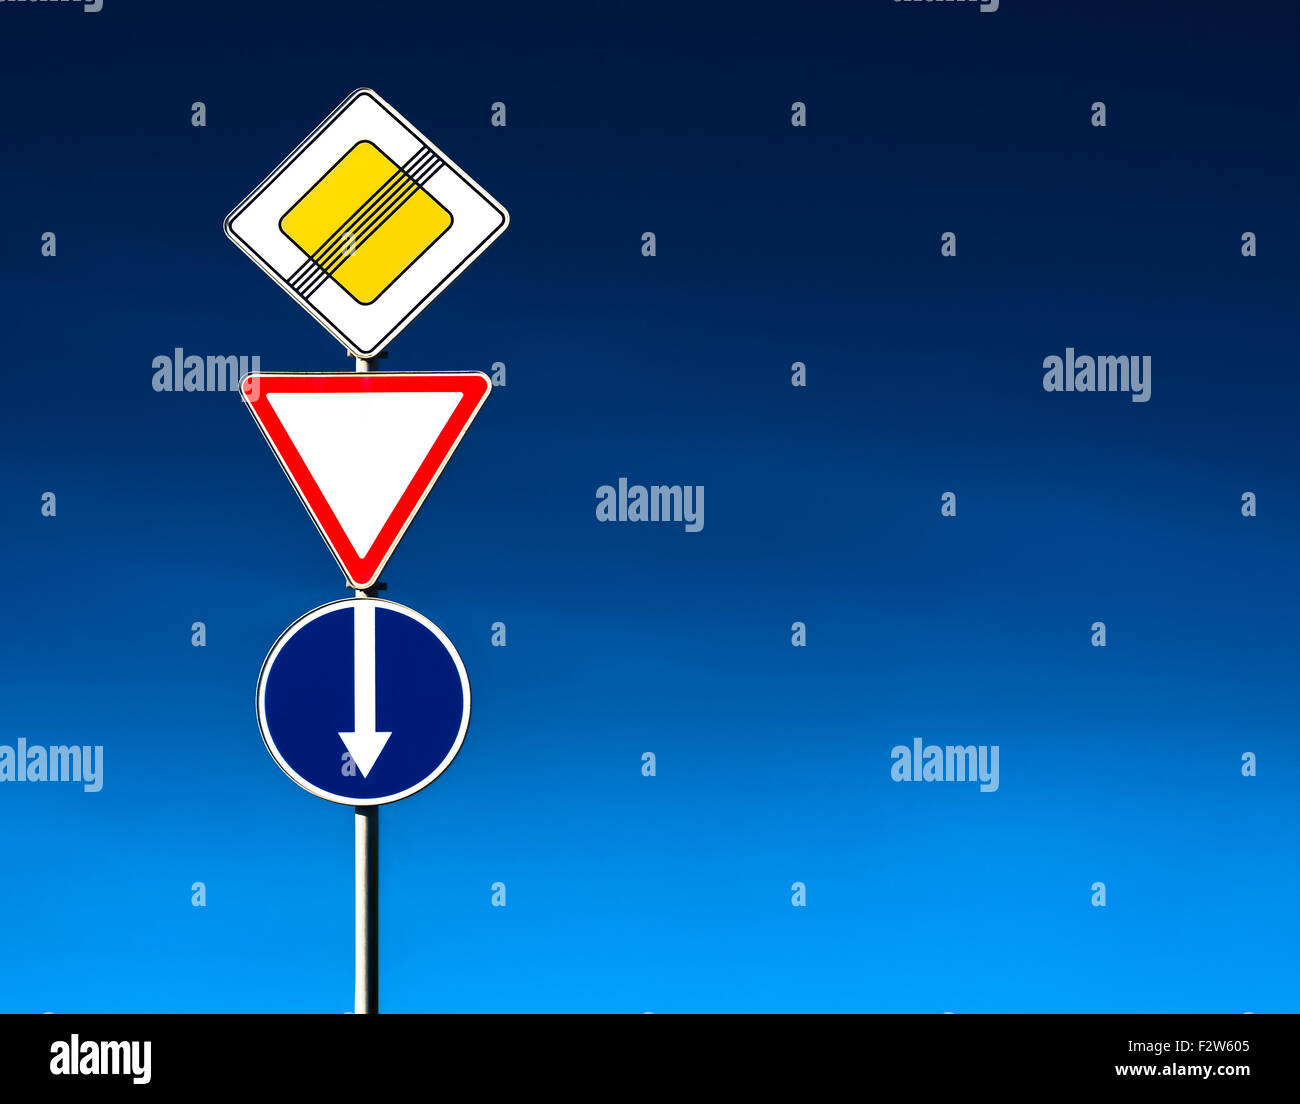 Conceptual road-sign Stock Photo